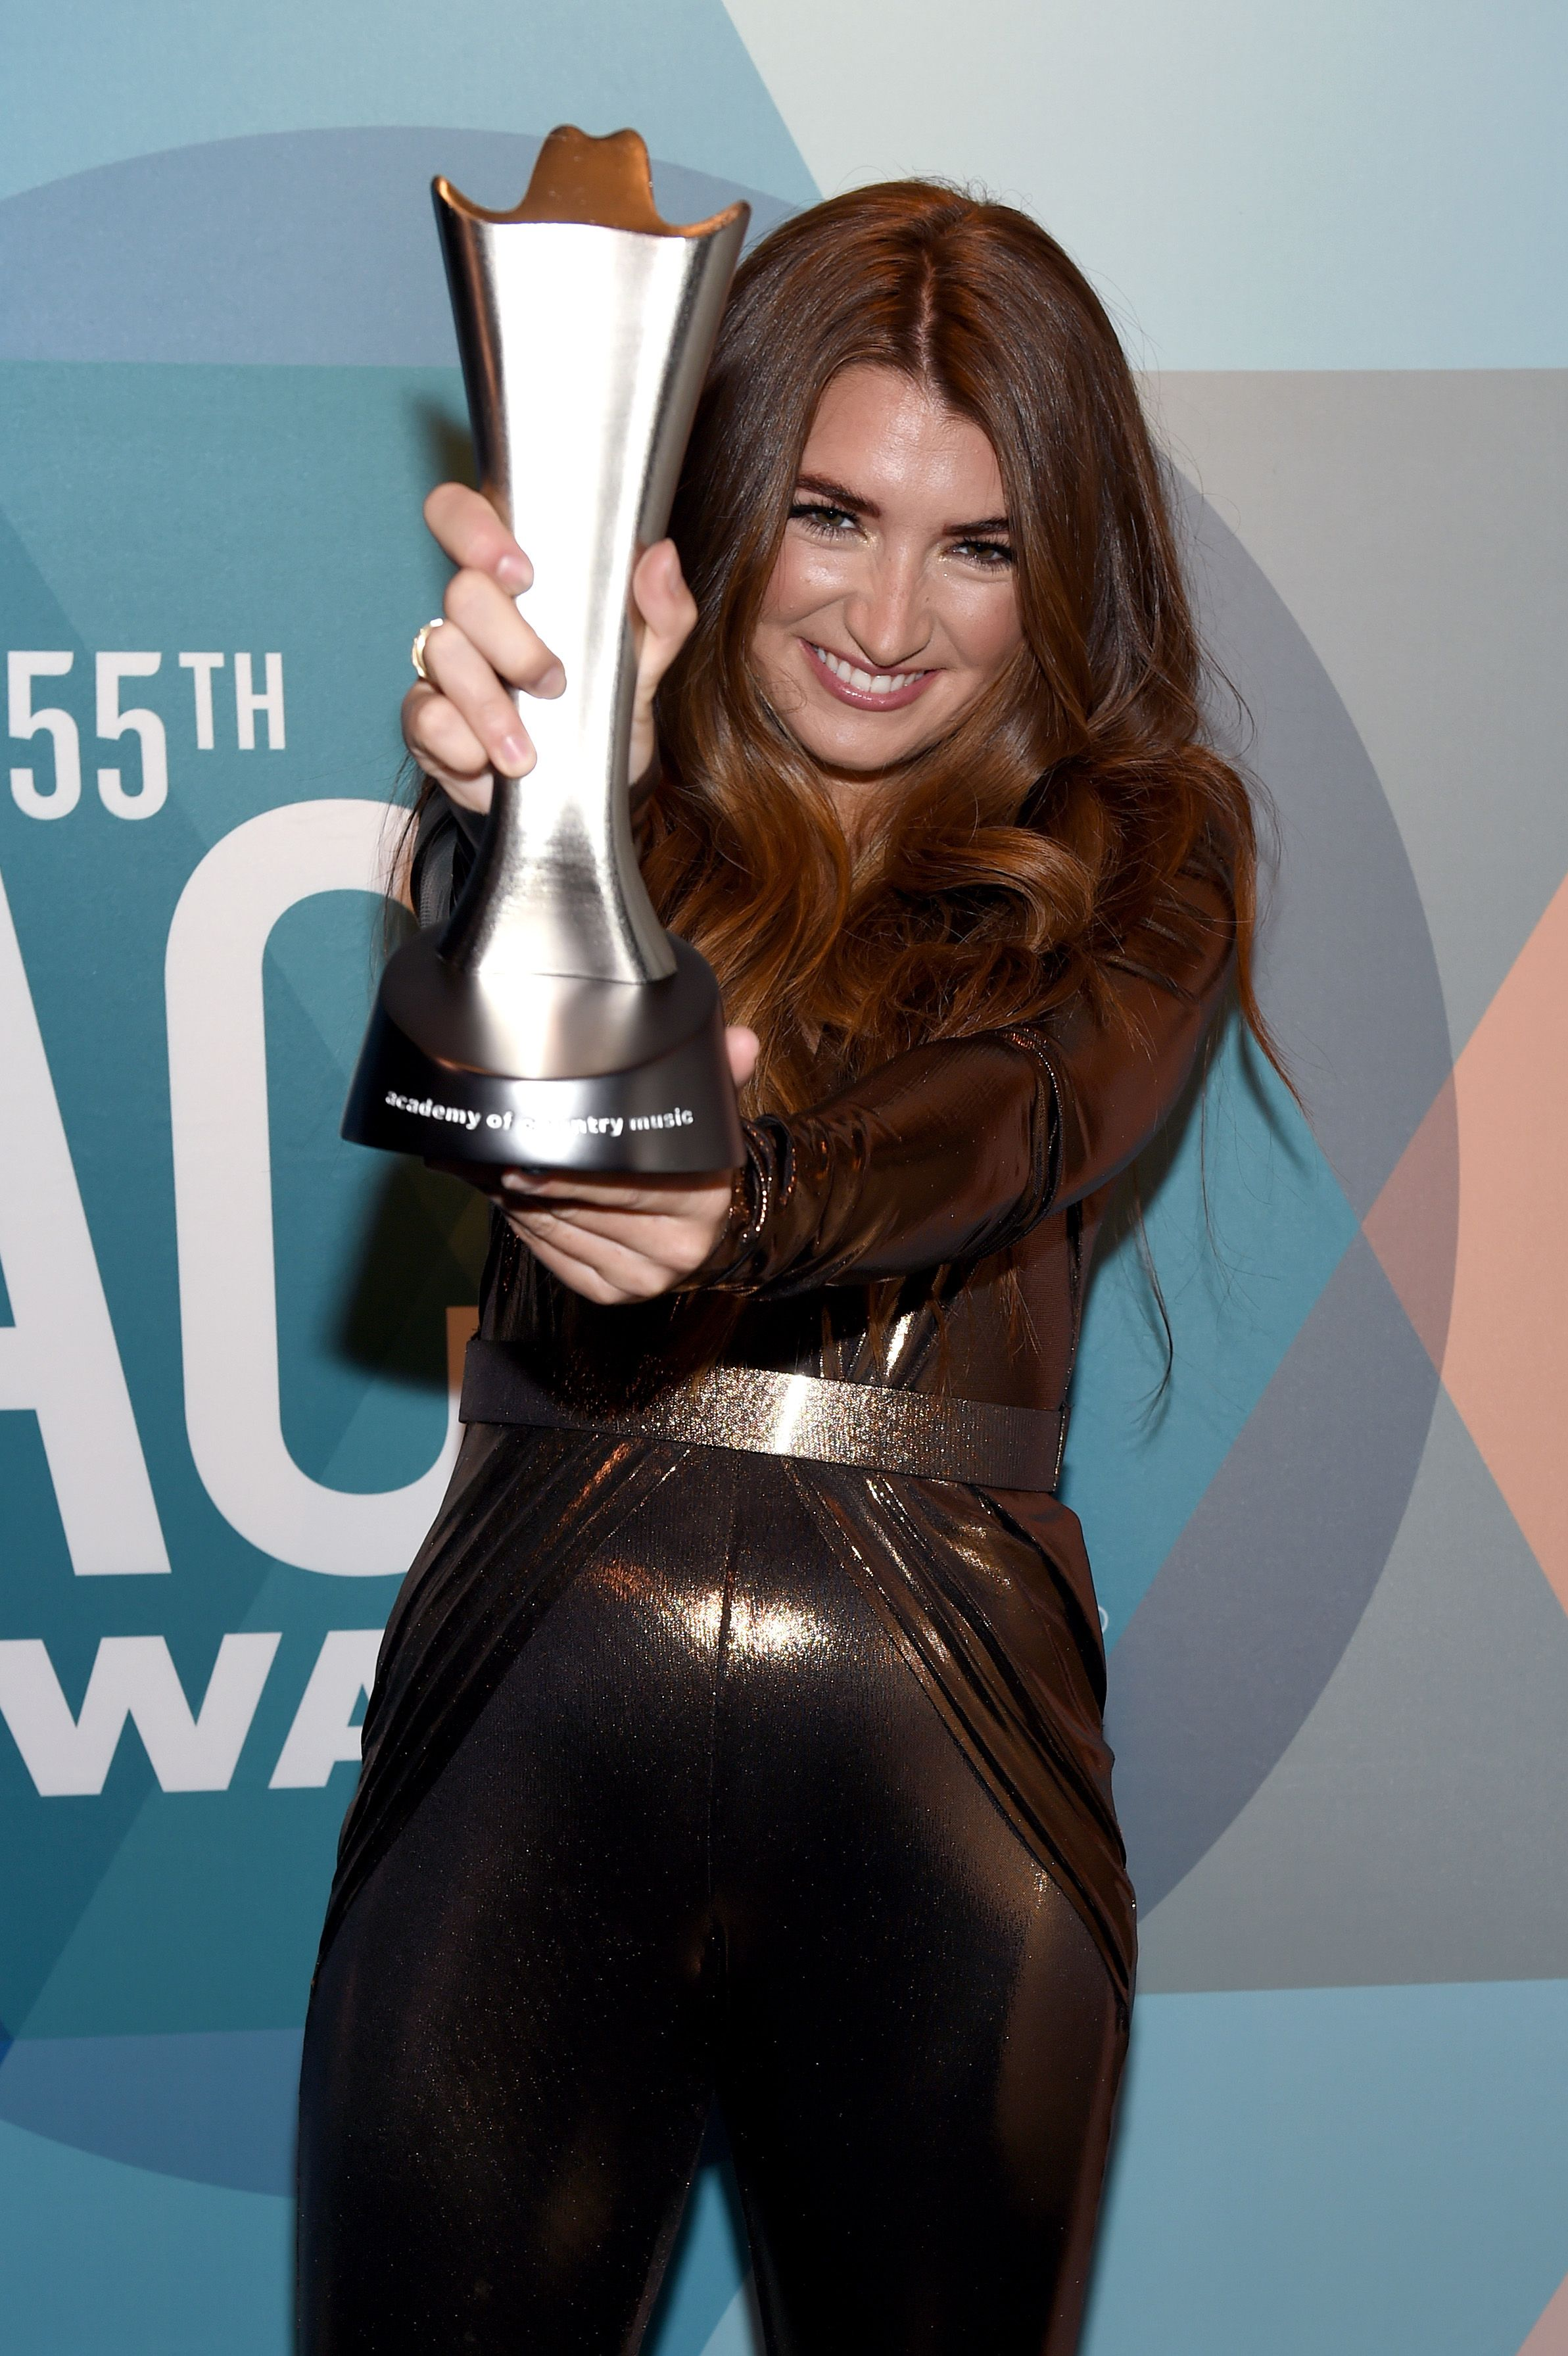 Tenille Townes with the award for New Female Artist of the Year at the Academy of Country Music Awards in 2020 in Nashville | Source: Getty Images